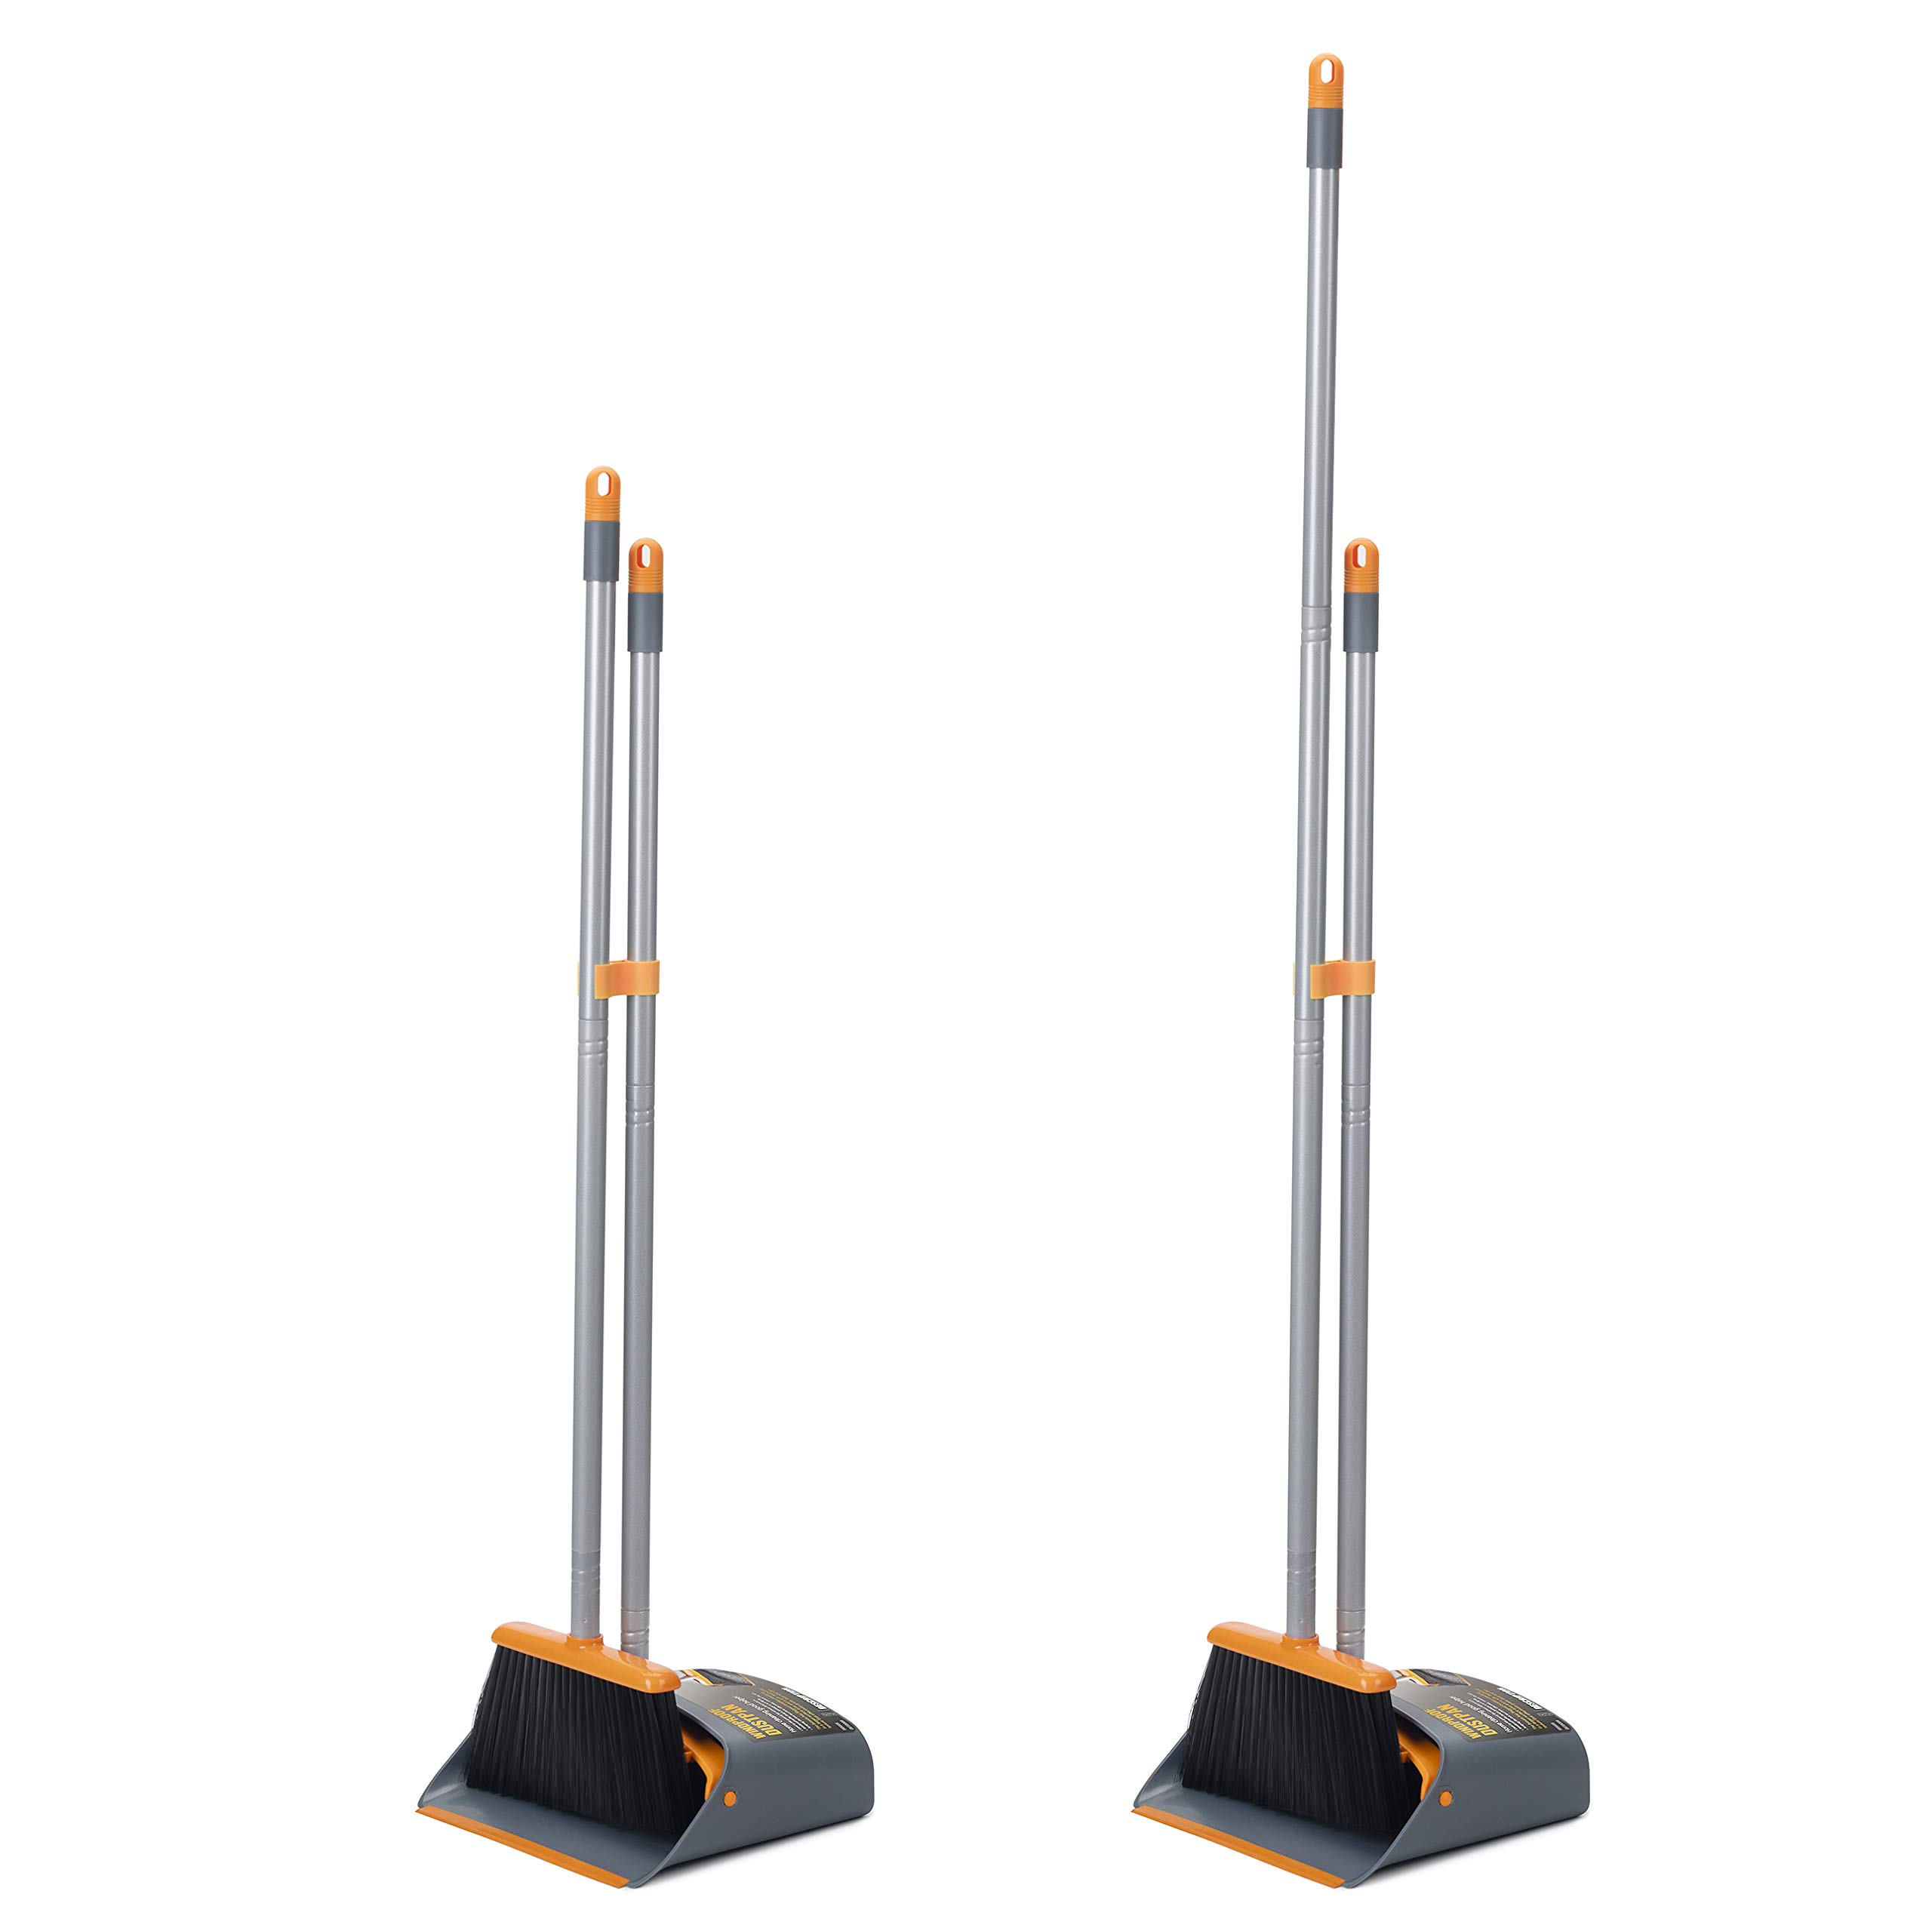 TooToo Broom and Dustpan Set, Sweep Set, Upright Broom and Dustpan Combo with 40''/54'' Long Extendable Handle for Household Cleaning Sweeping, Orange and Dark Grey by TooToo (Image #4)